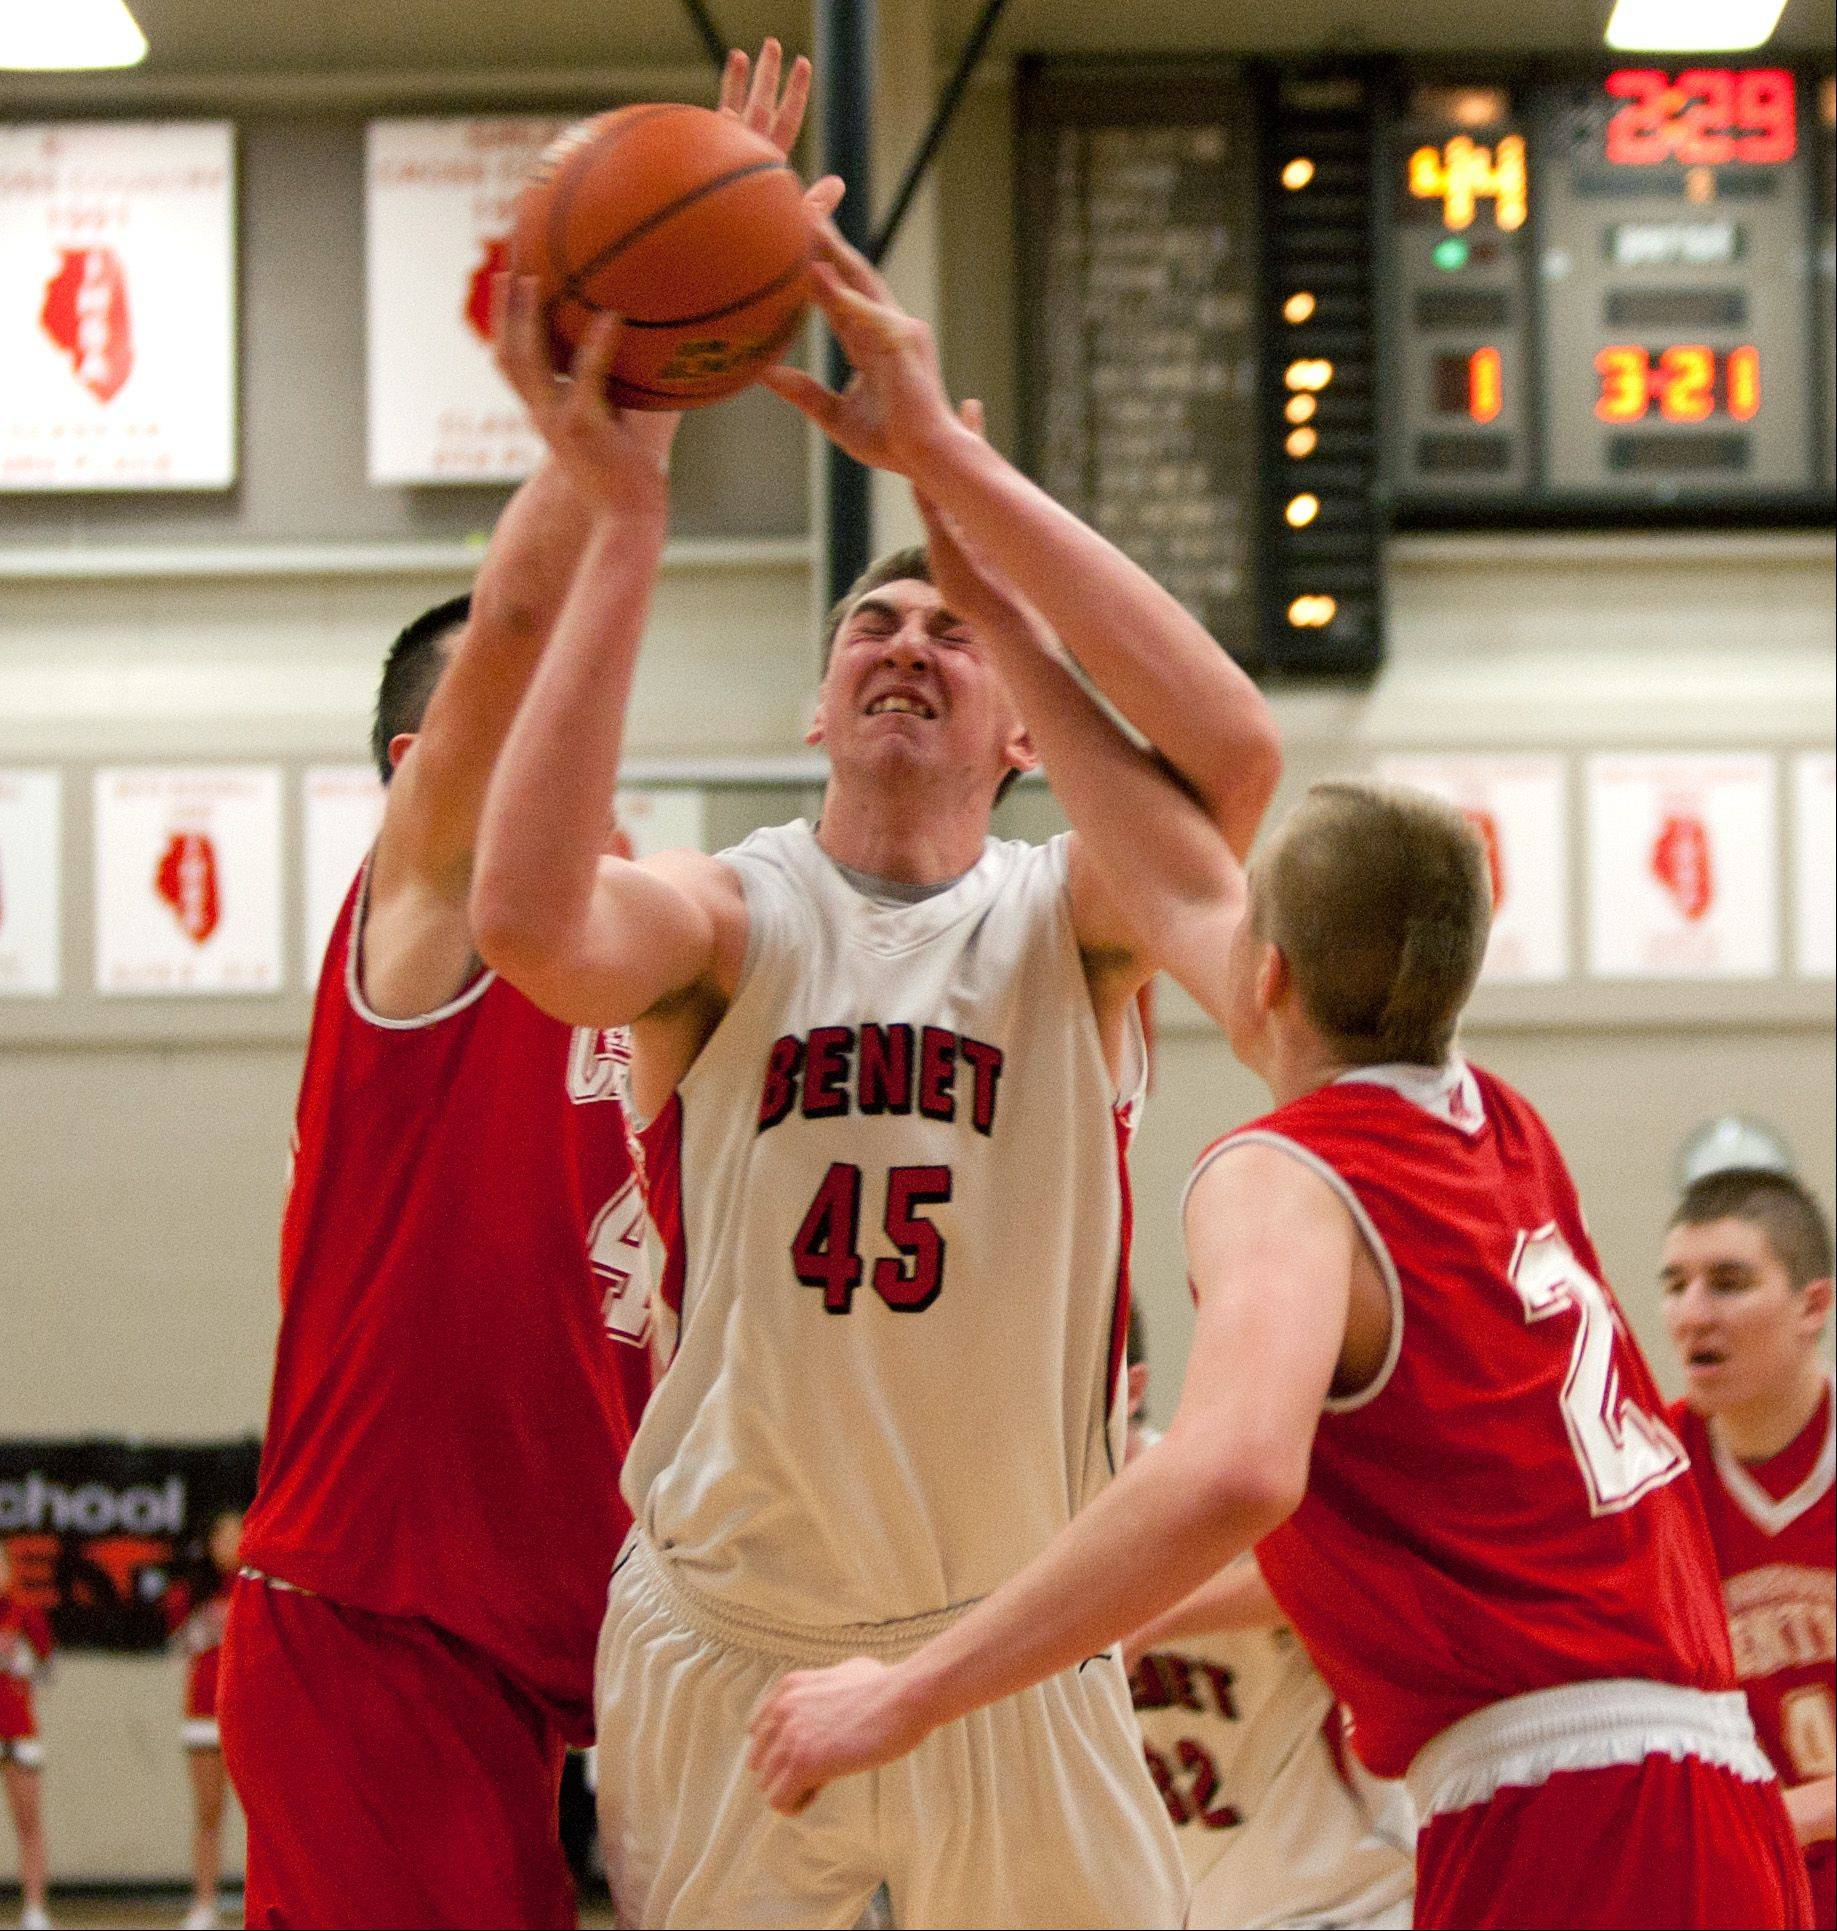 Home cooking: Benet wins big